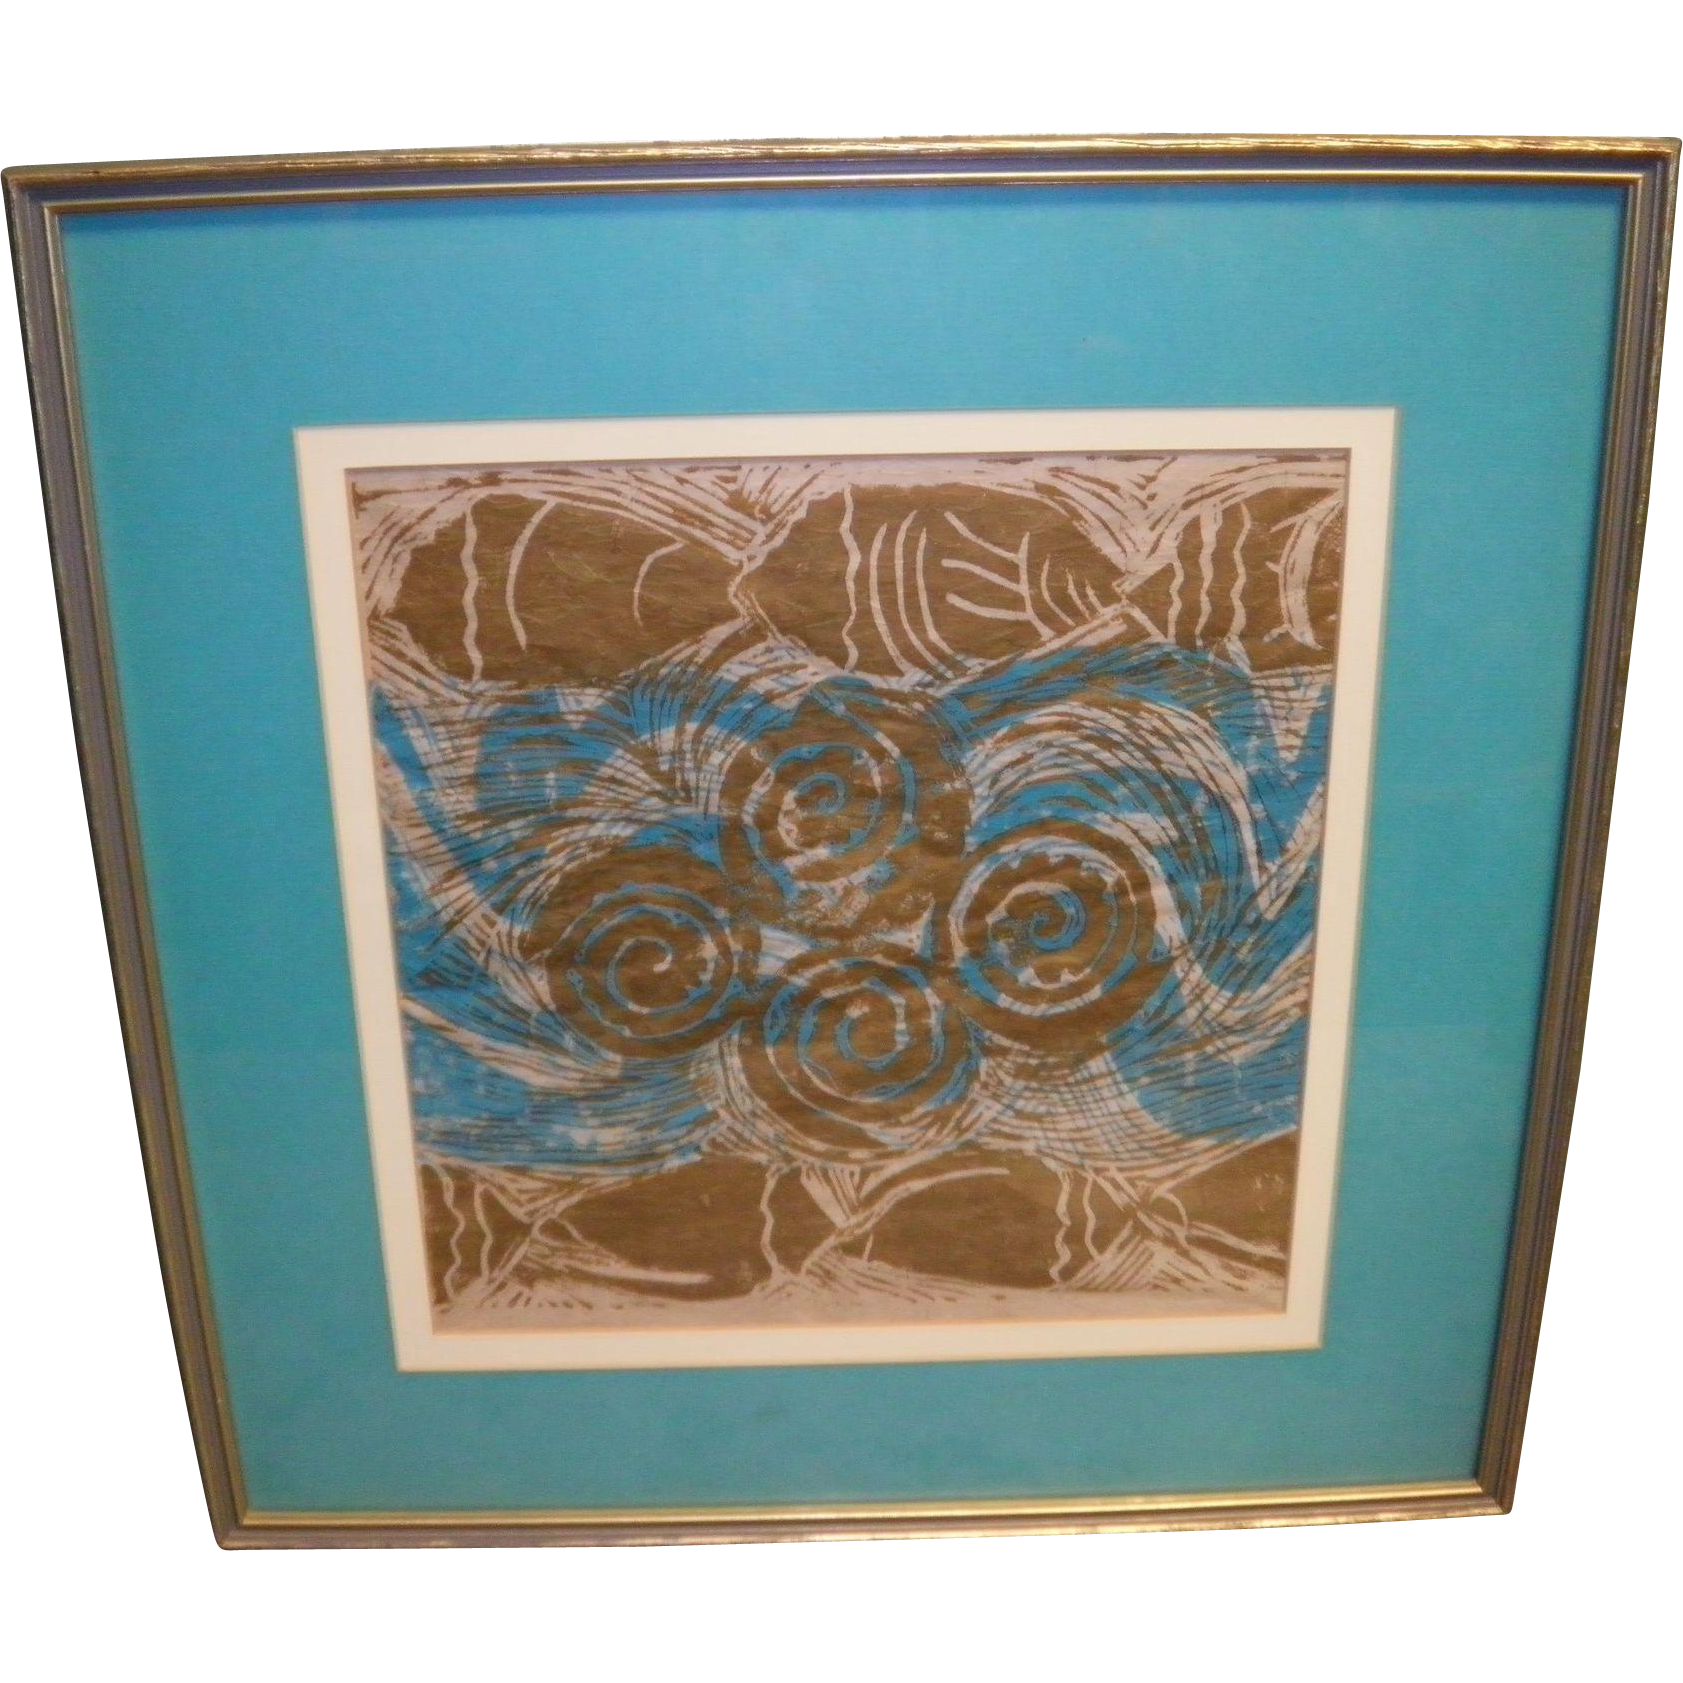 Delores White Matted and Framed Print